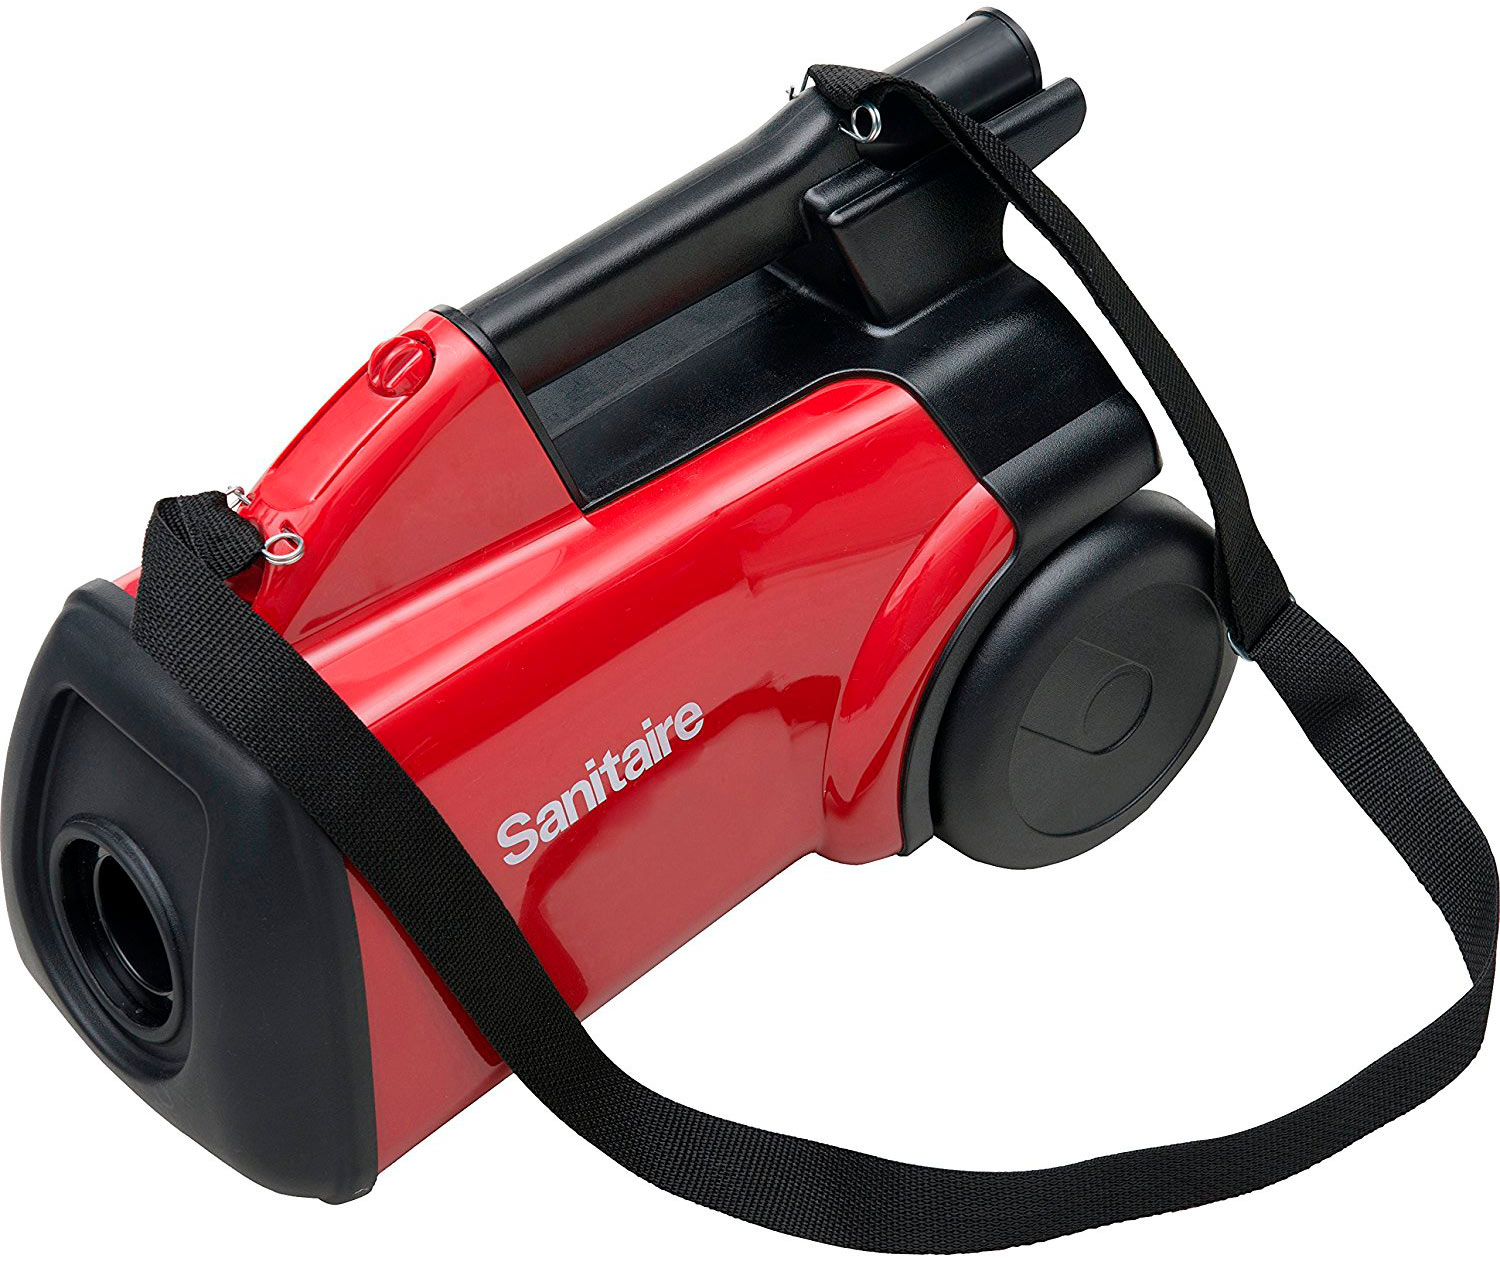 Sanitaire SC3683B Commercial Canister Vacuum with shoulder strap